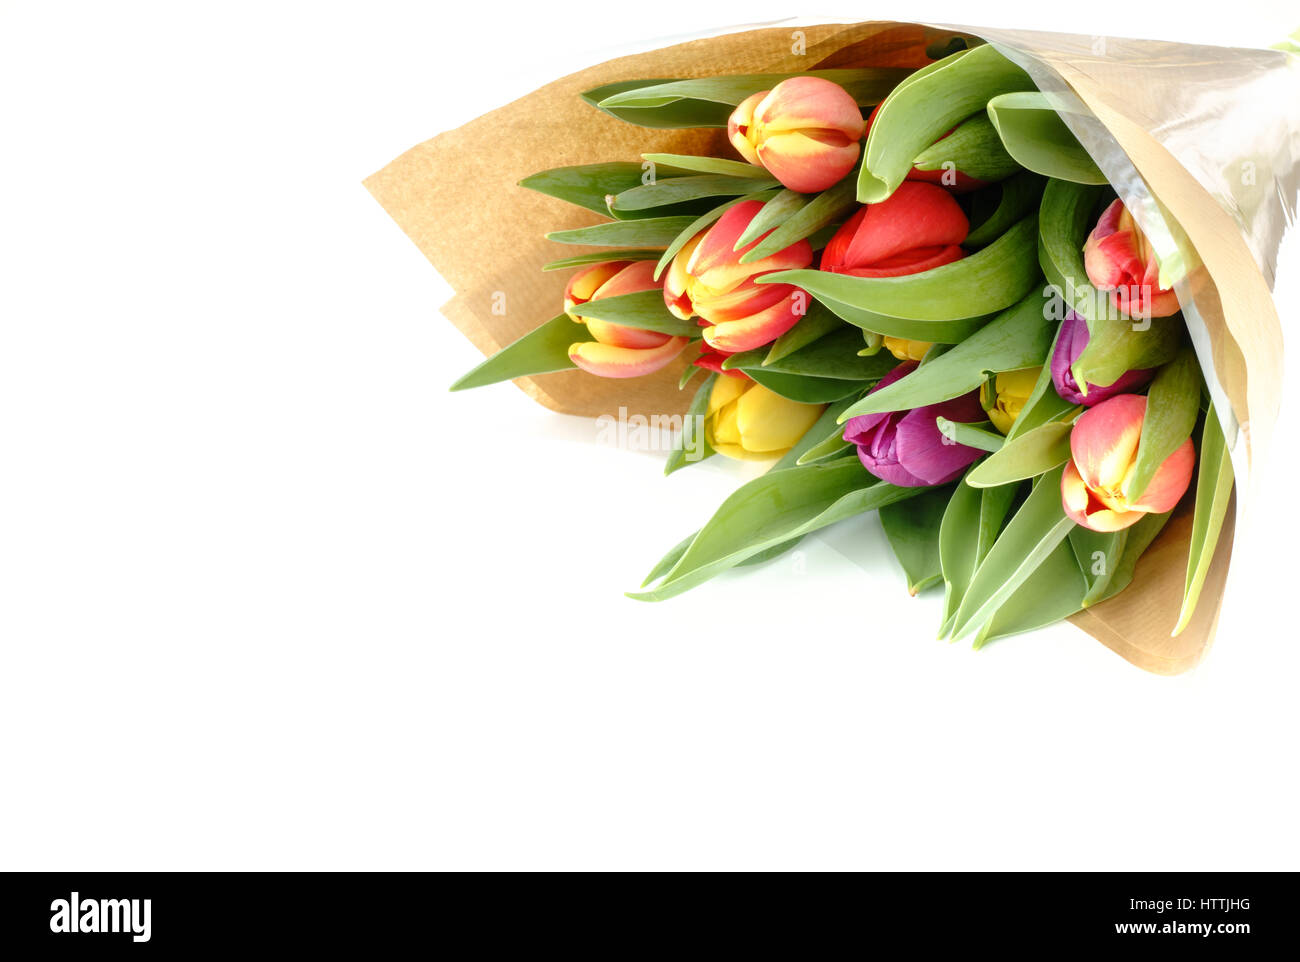 Flower bouquet brown paper stock photos flower bouquet brown paper bouquet of beautiful multicolored rainbow tulips wrapped in brown paper on white background with lots of mightylinksfo